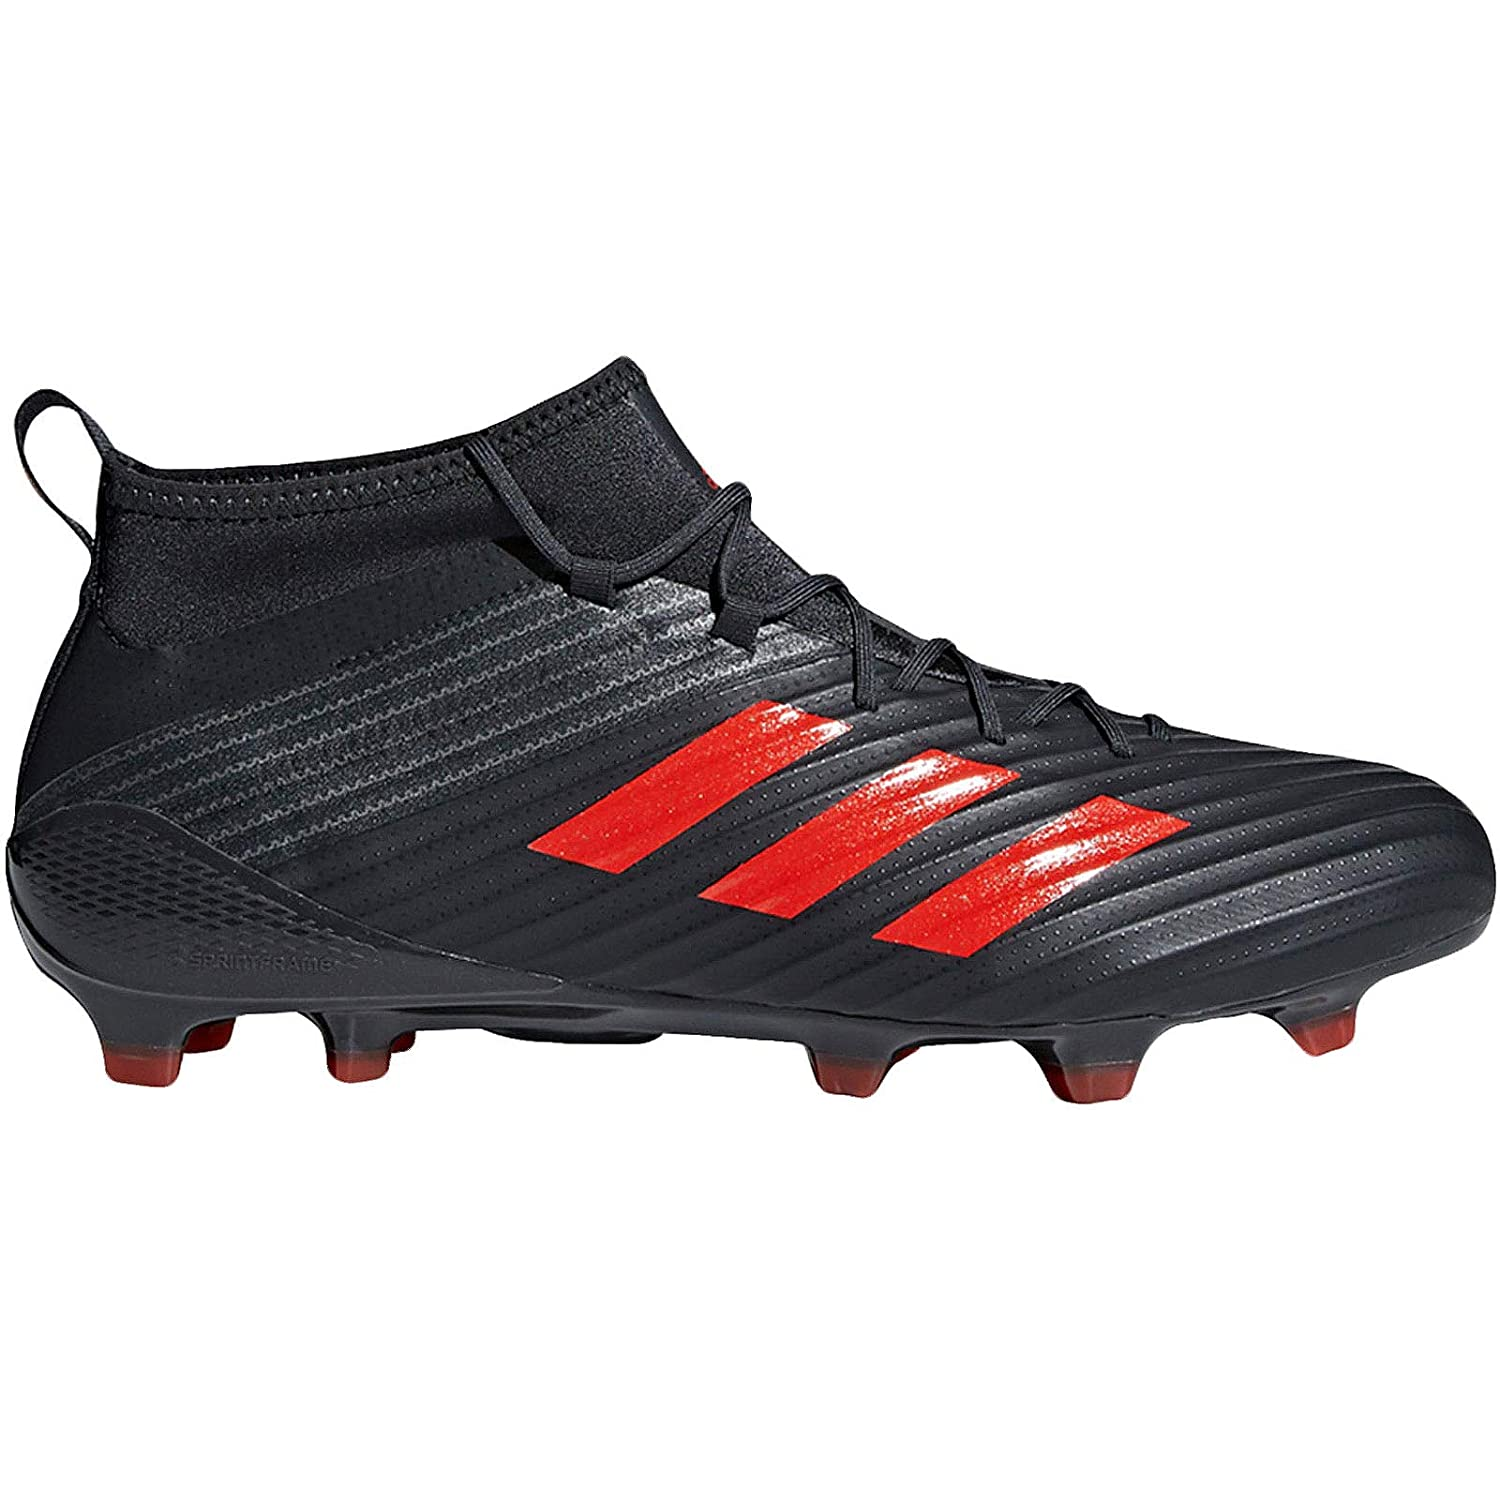 Marron (Lmarron Hirere Talc Lmarron Hirere Talc) adidas Prougeator Flare FG, Chaussures de Rugby Homme 48 2 3 EU